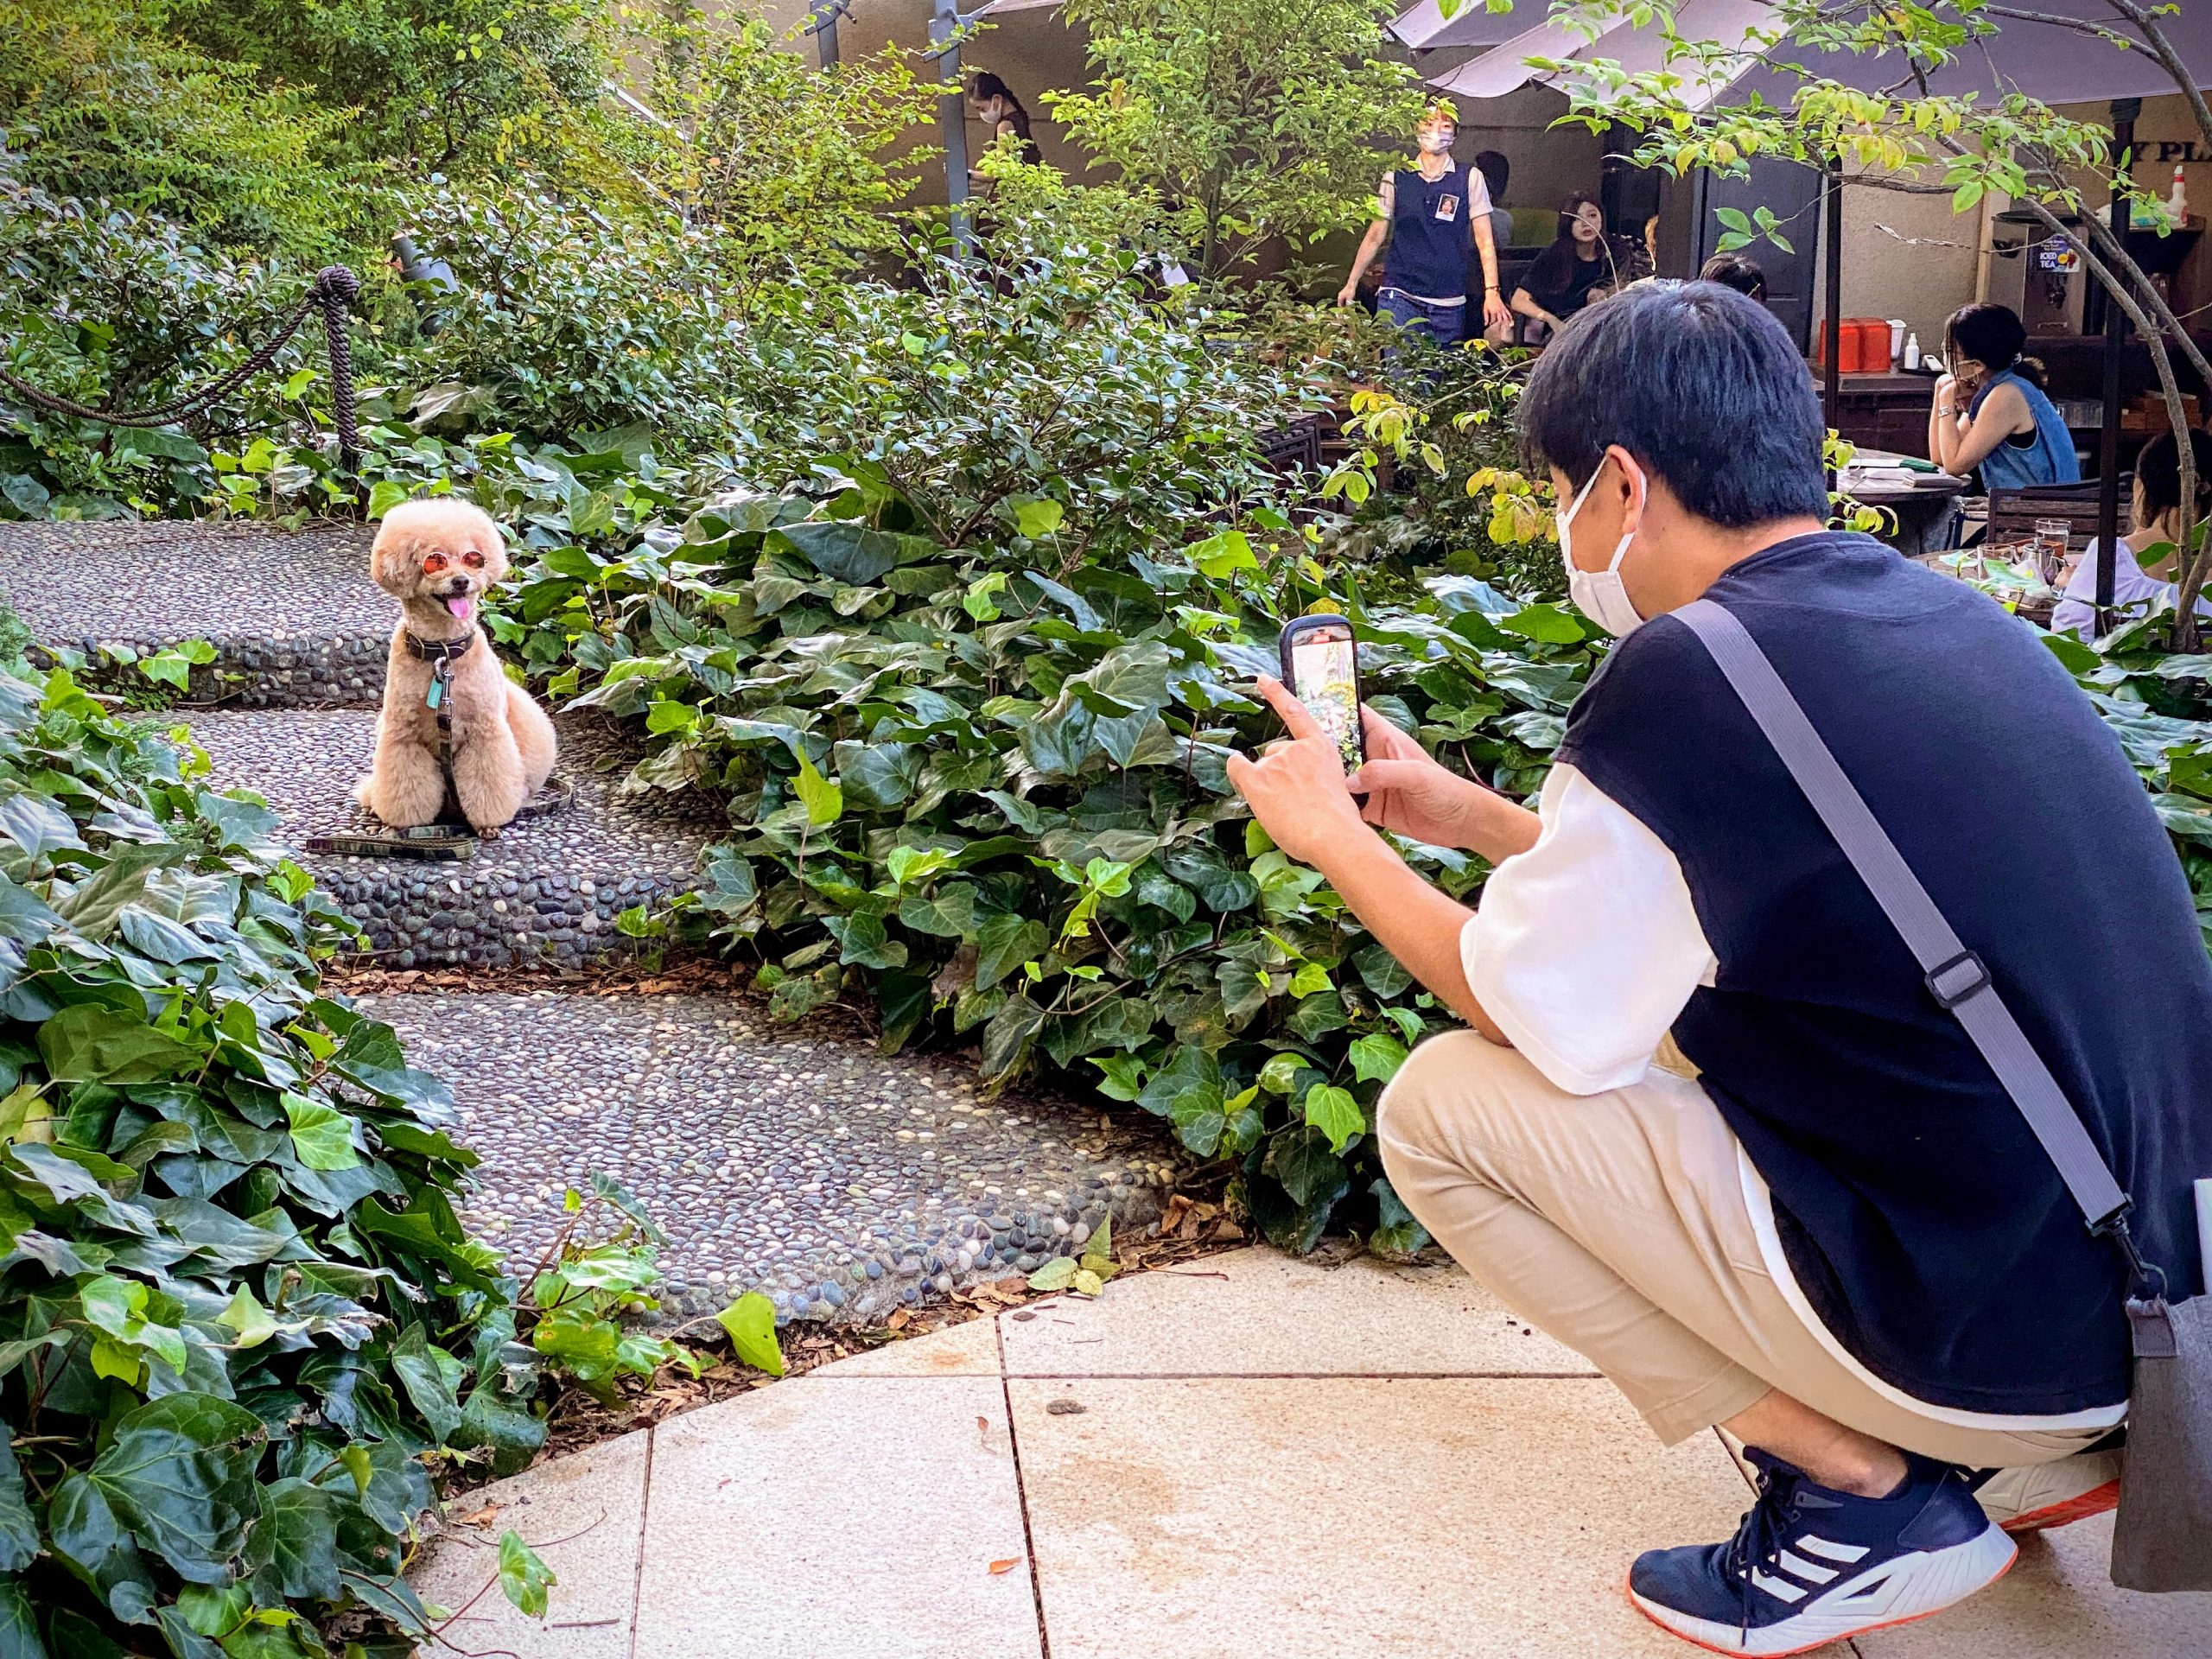 Dog posing for photo in Tokyo